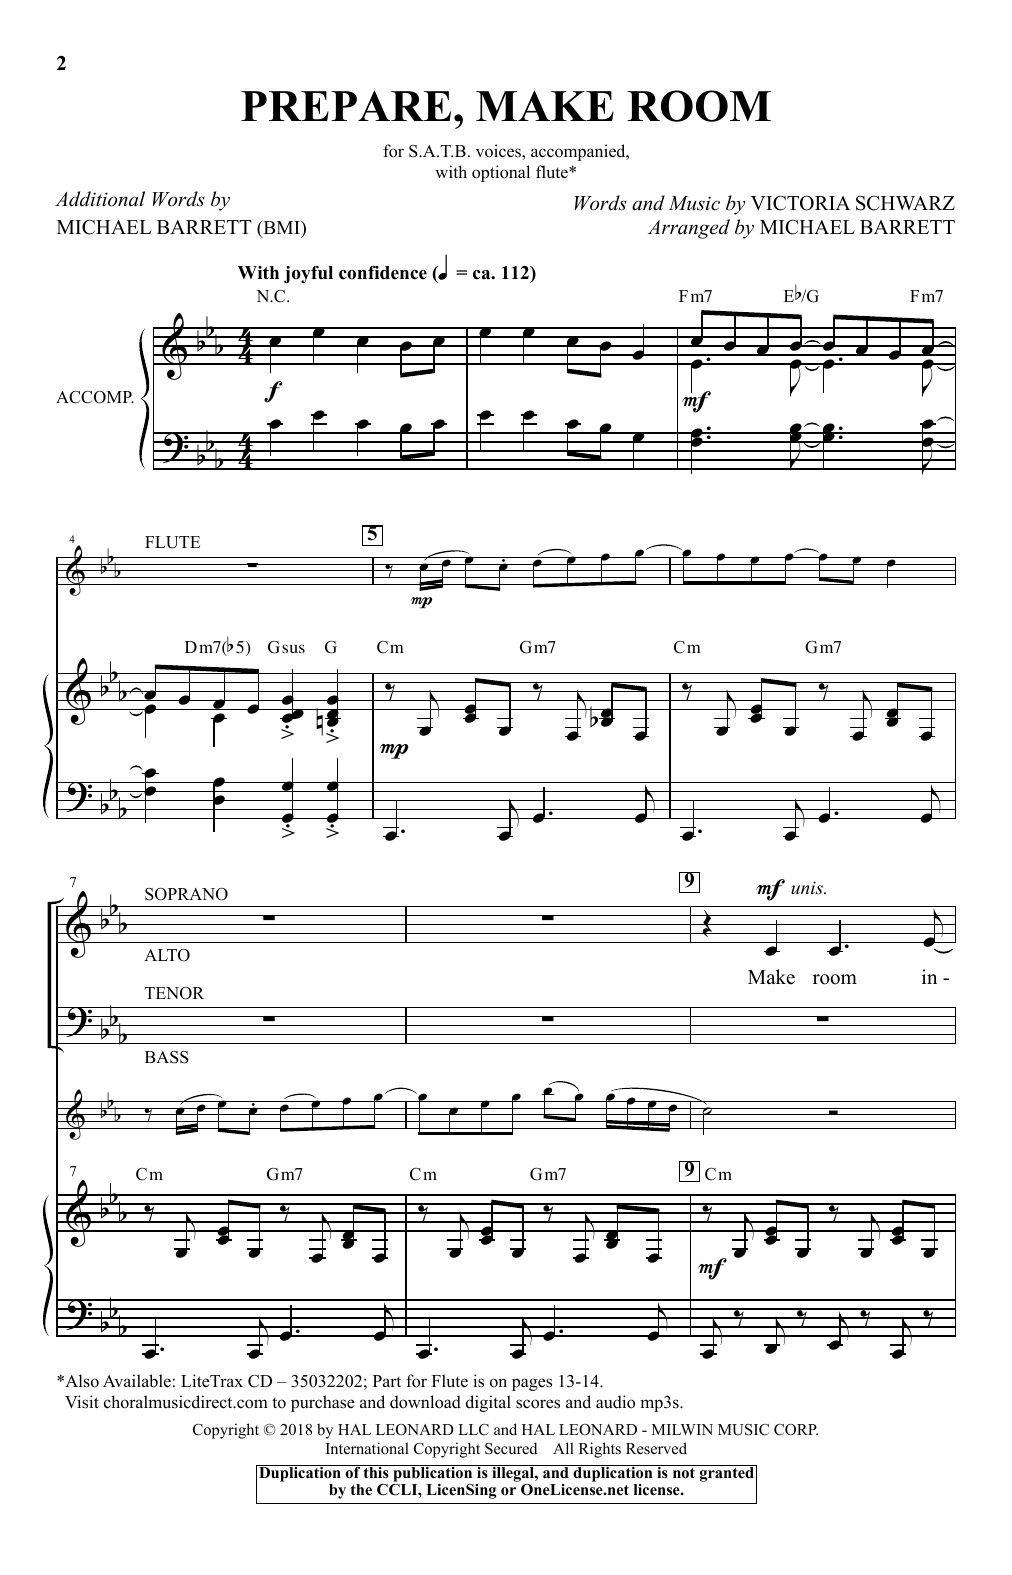 Prepare, Make Room - SATB W/ FLUTE by Victoria Schwarz